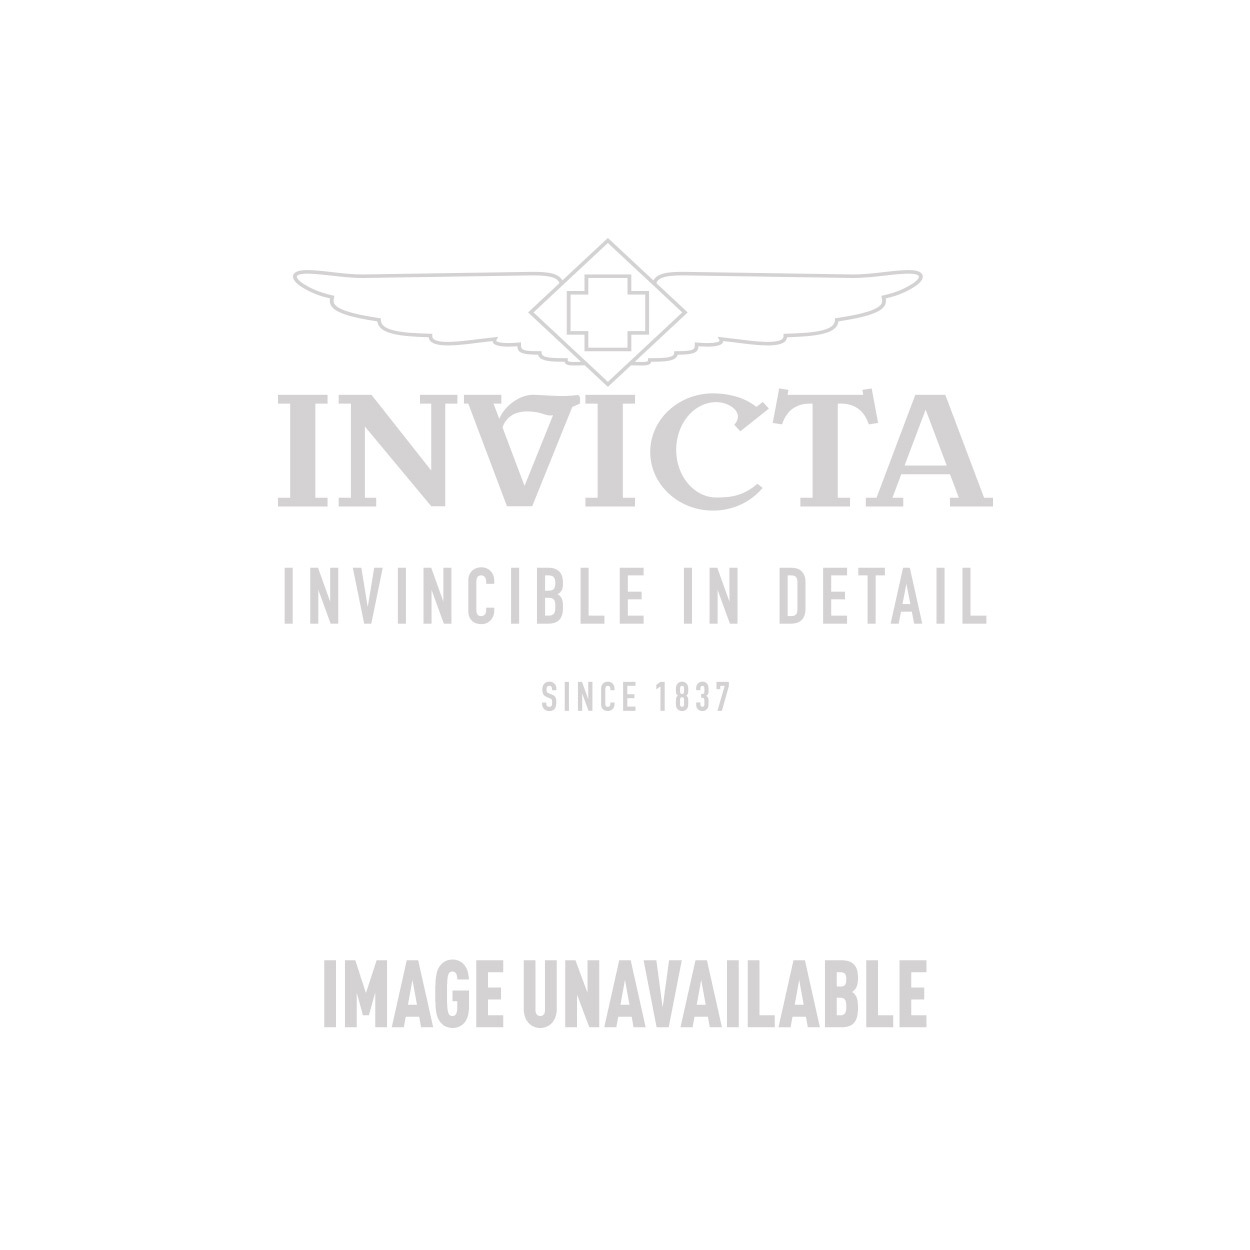 Invicta 21cm Men's Bracelets in Red - Model J0209